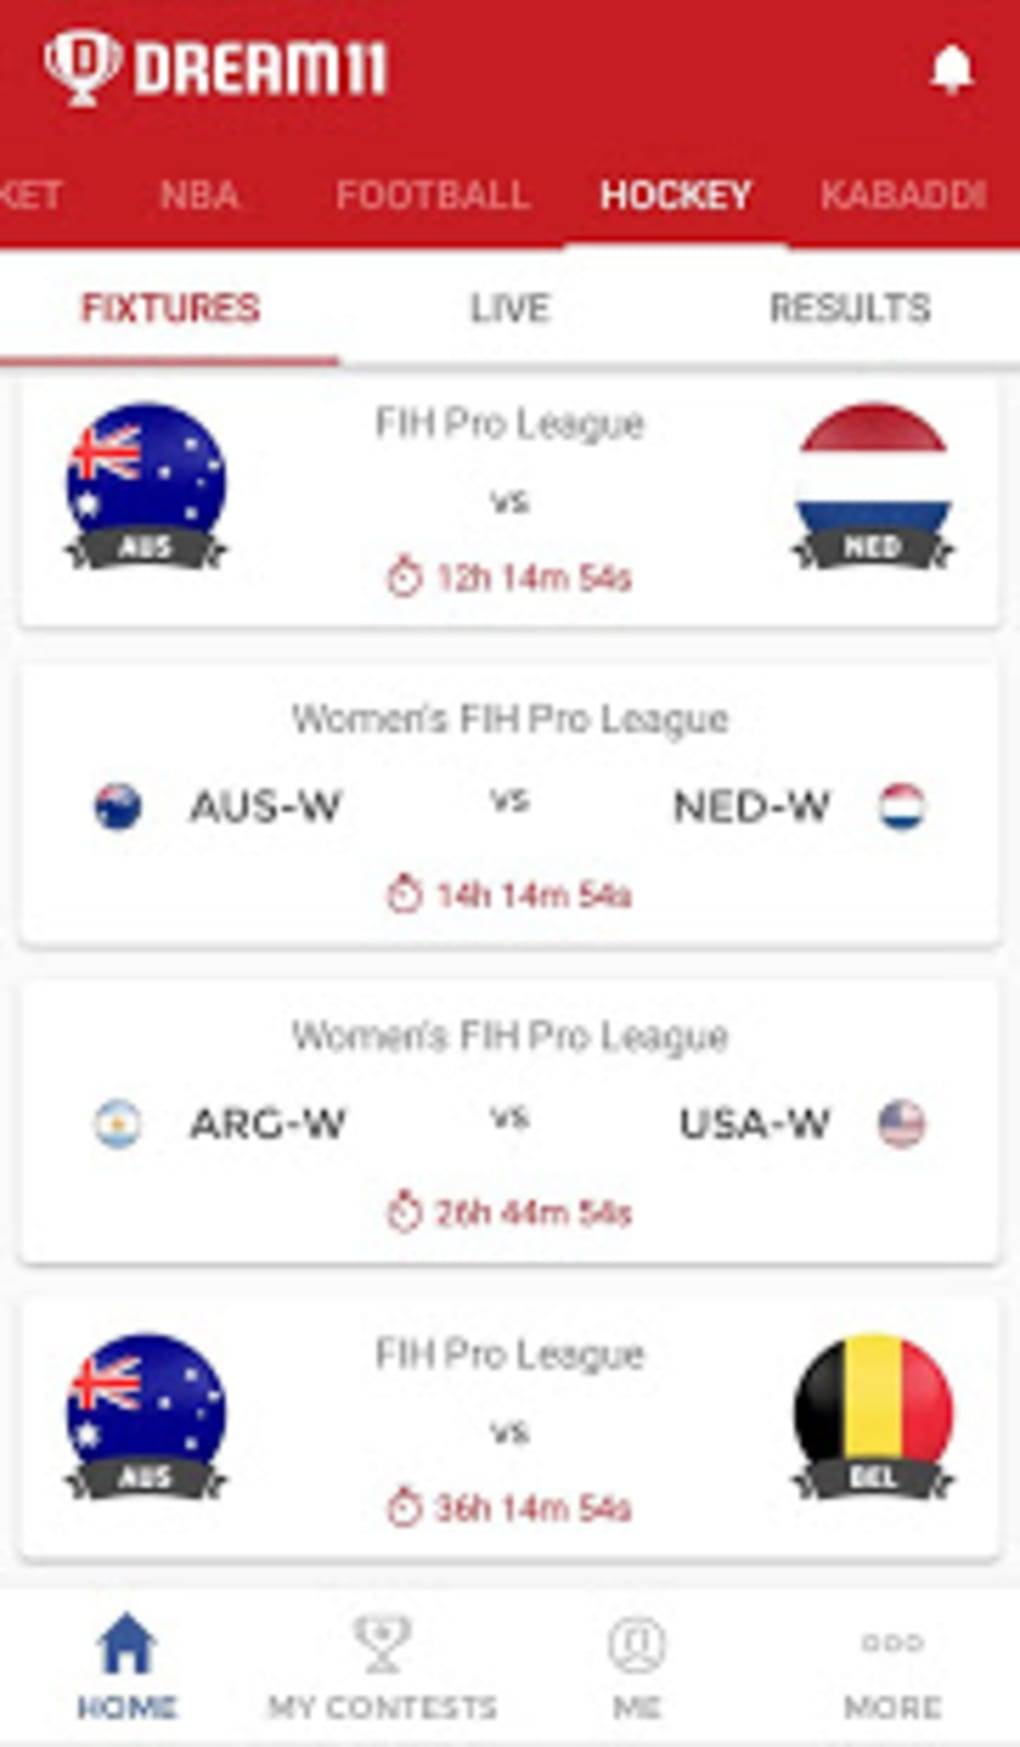 Dream11 for Android - Download